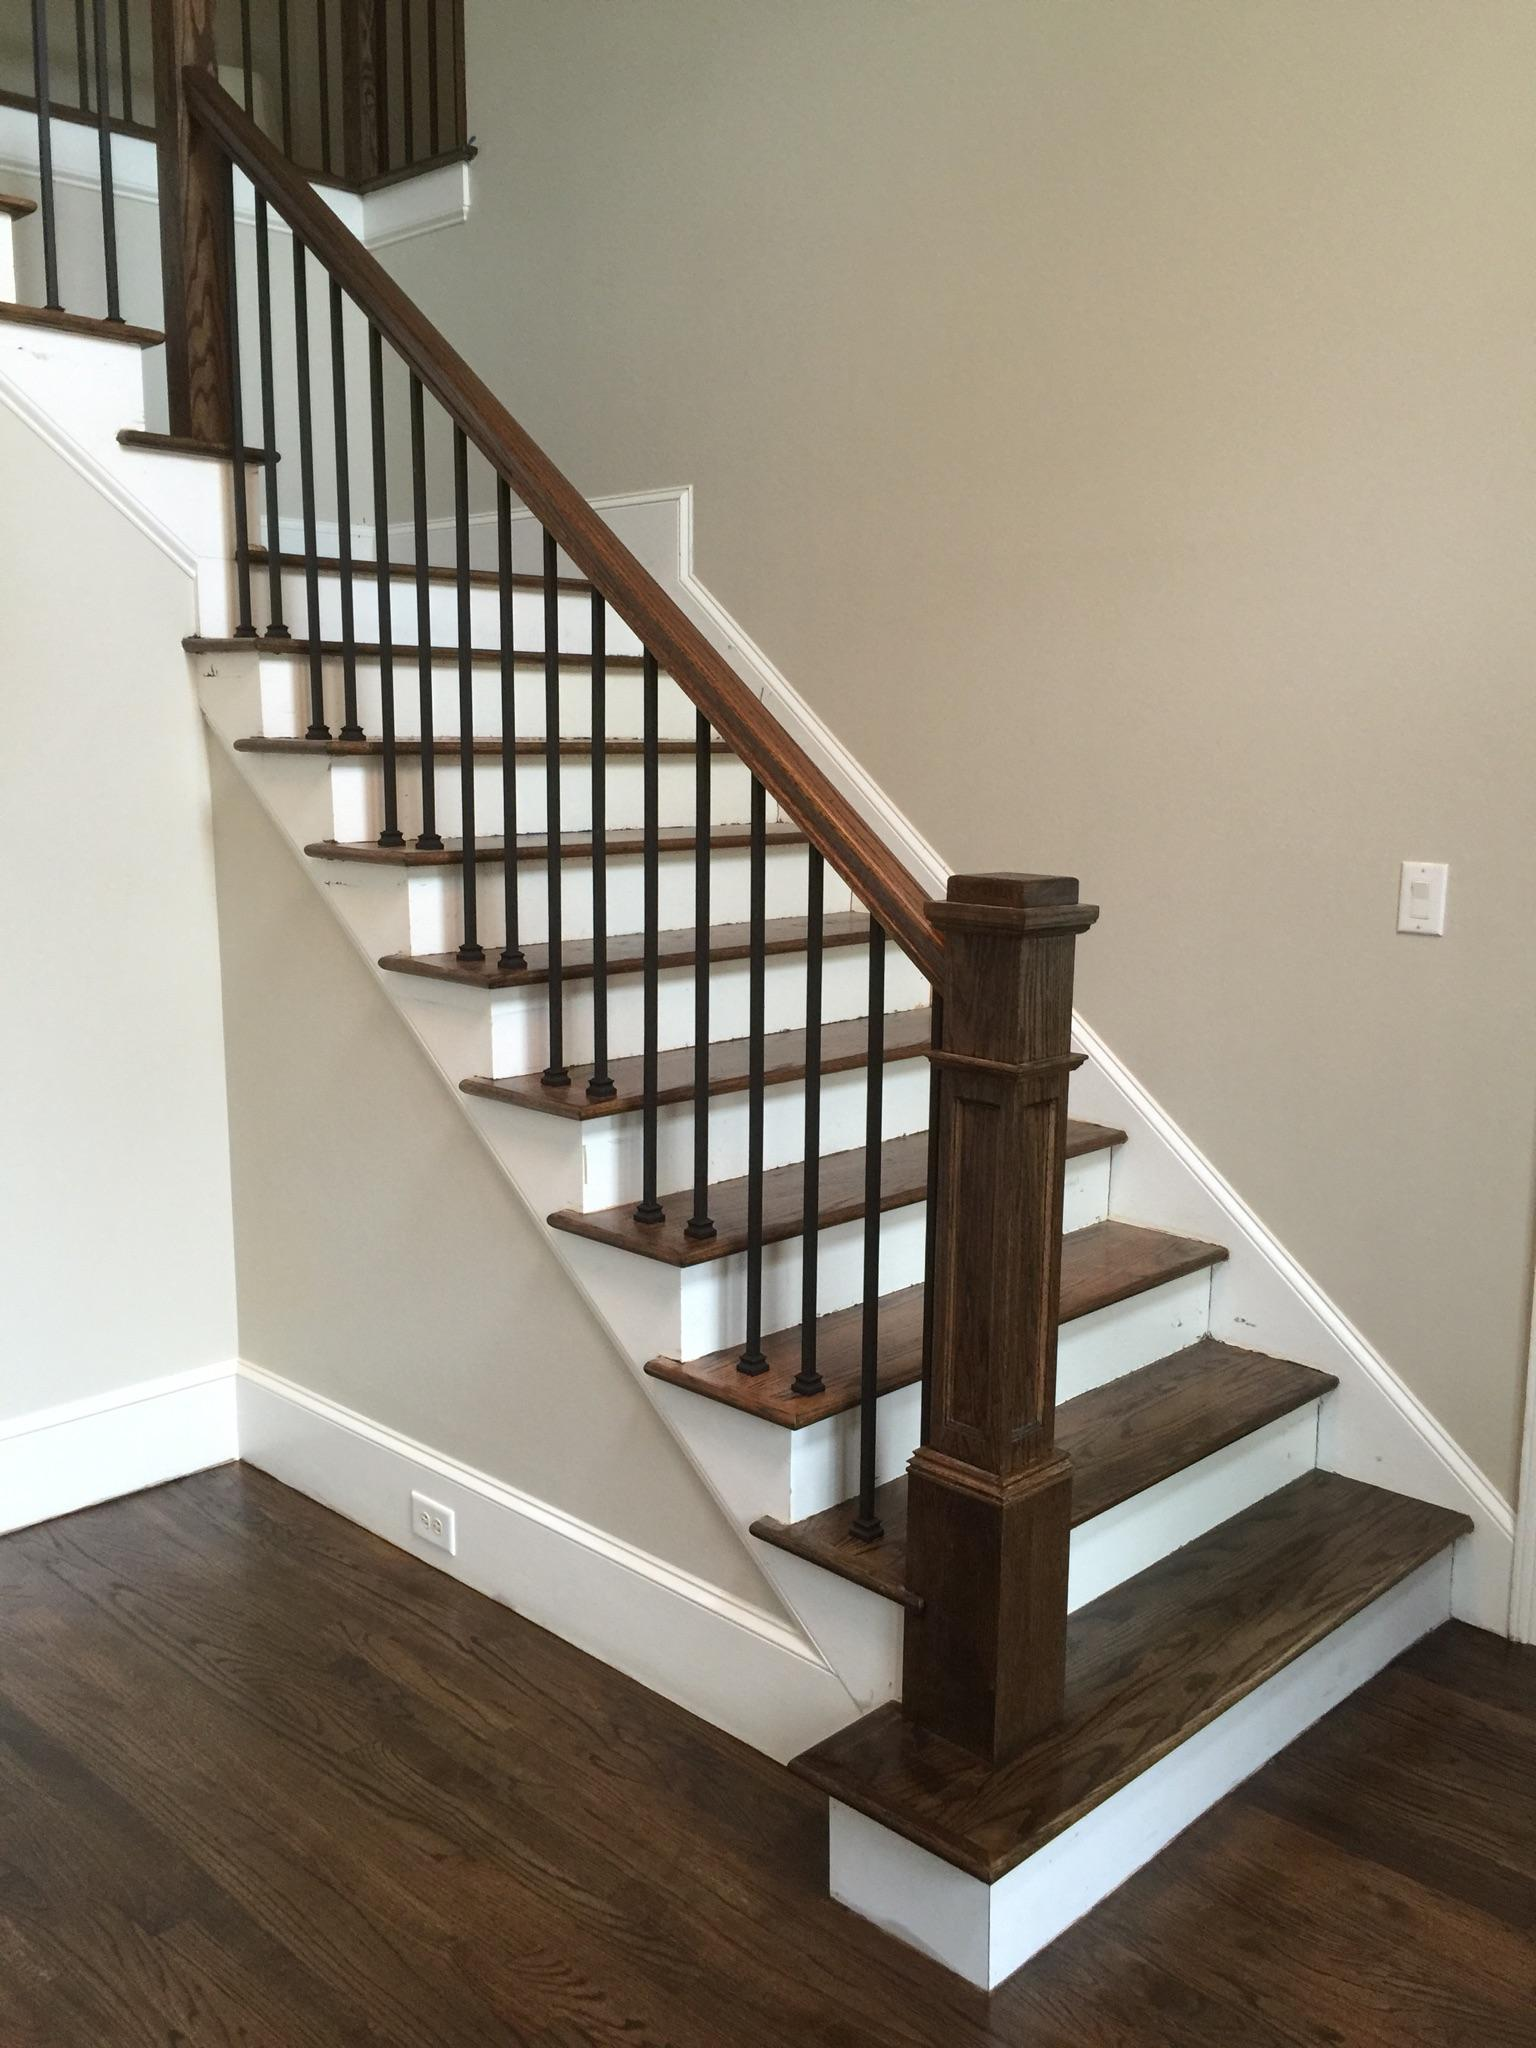 Stair Balusters Custom Iron Stair Balusters